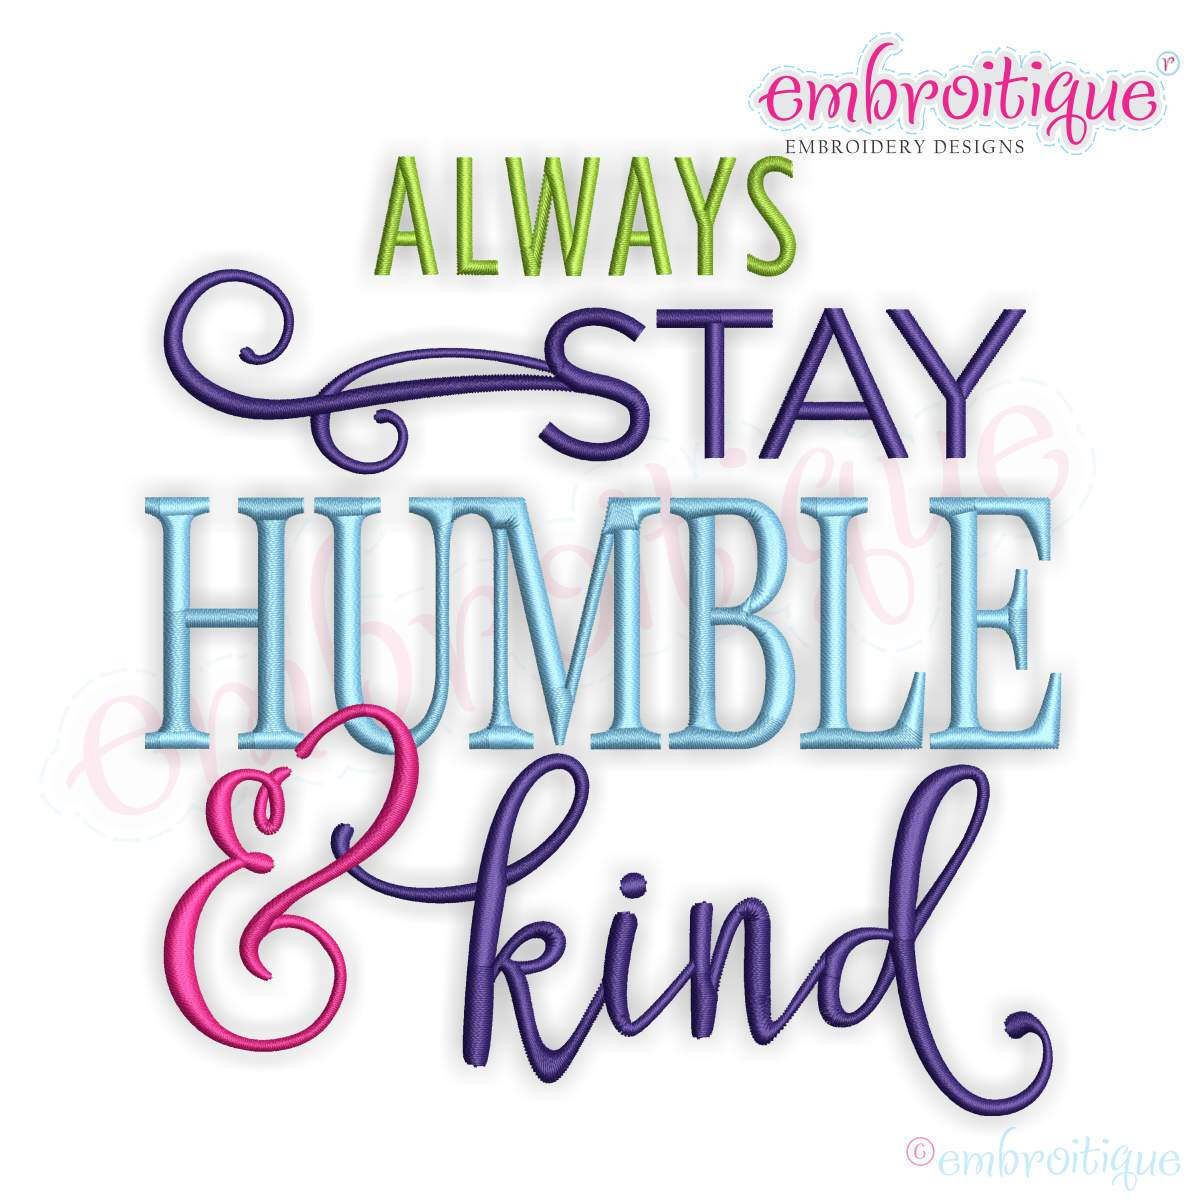 Always Stay Humble & Kind  -Instant Download Machine Embroidery Design by Embroitique on Etsy https://www.etsy.com/listing/504459866/always-stay-humble-kind-instant-download